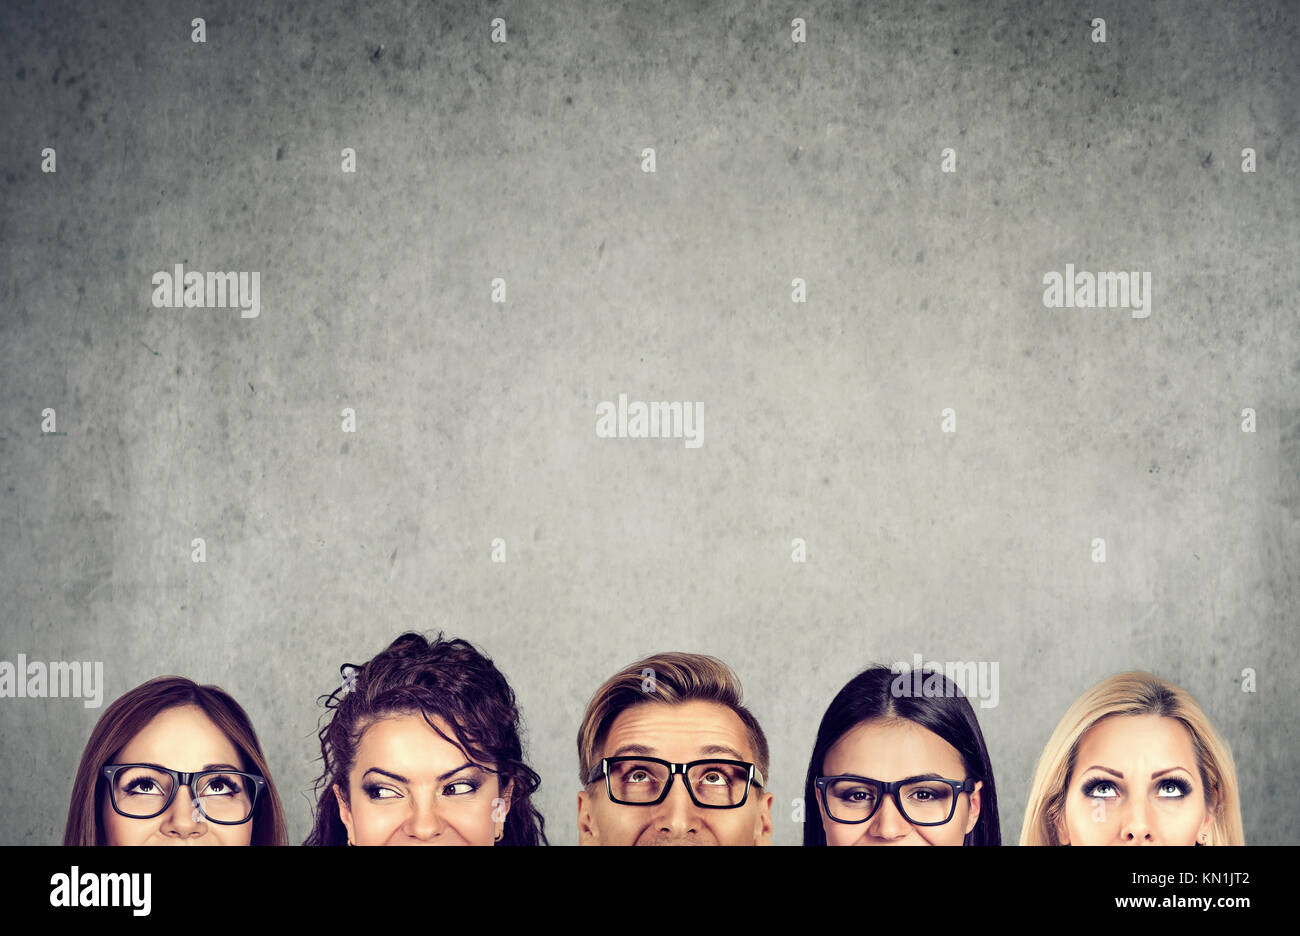 Closeup of young people heads standing near a gray concrete wall. A diverse business team and brainstorming concept - Stock Image